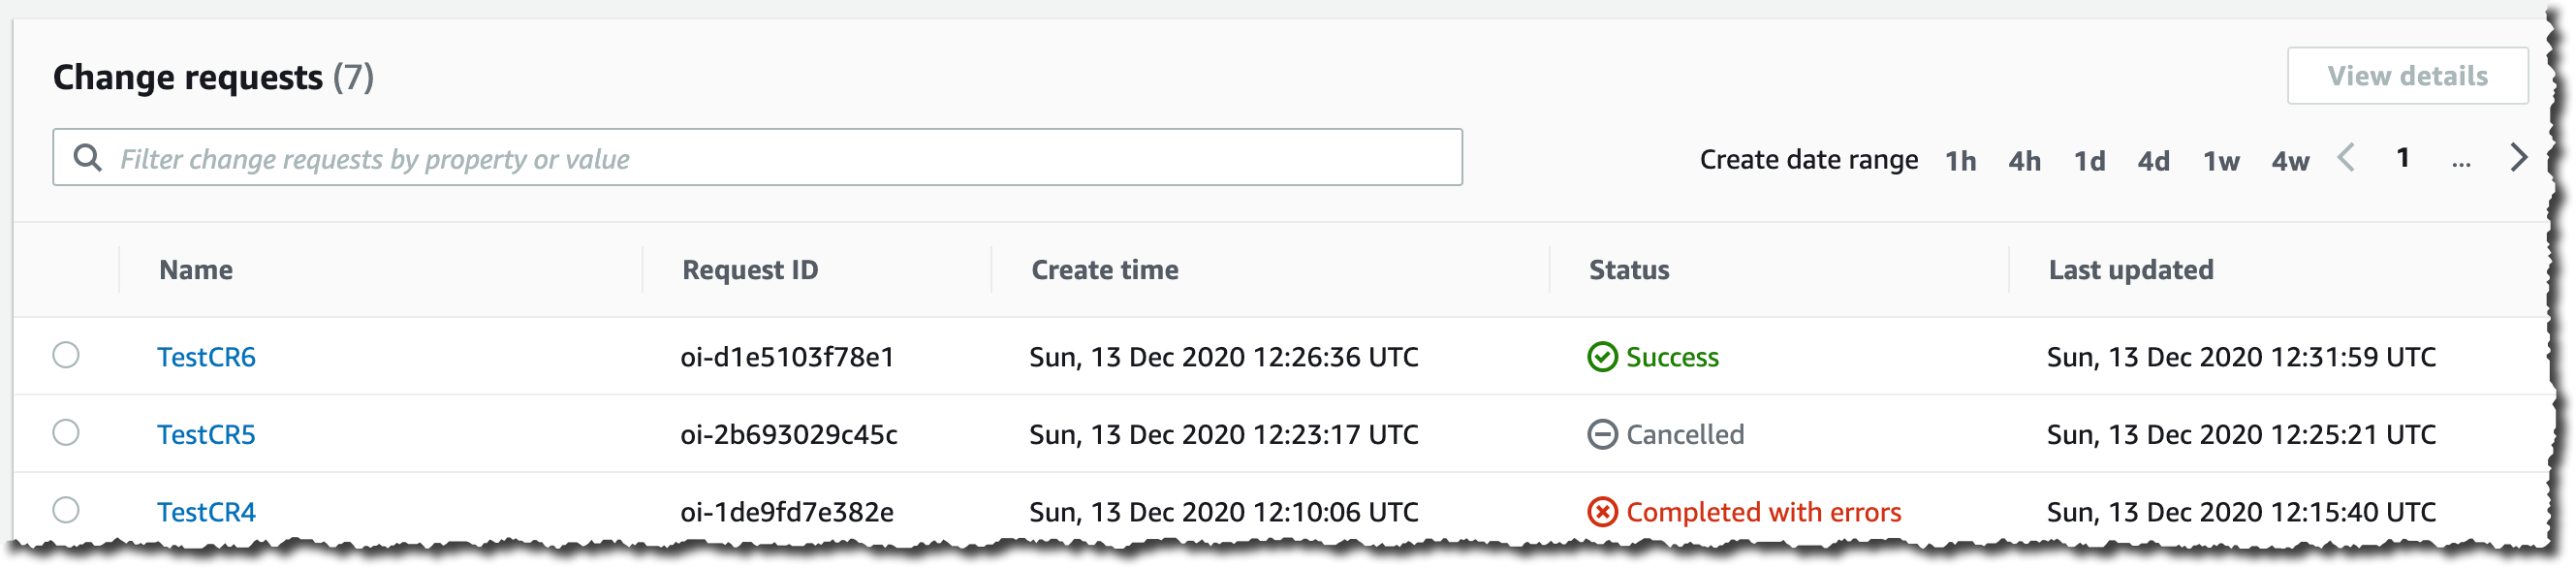 Change Manager Dashboard with Succeeded Request